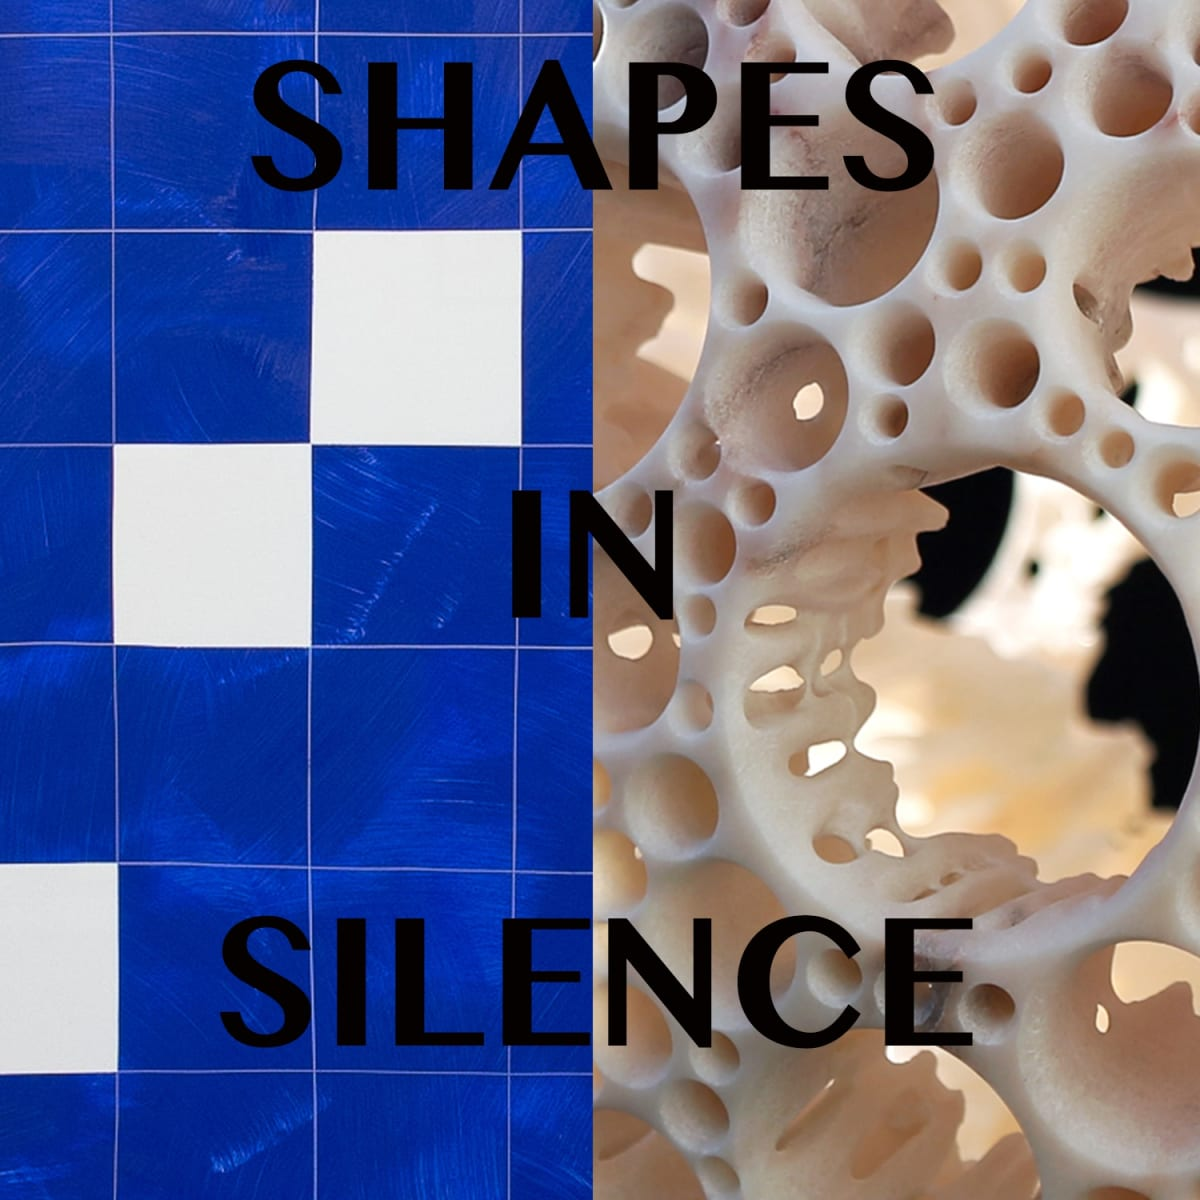 SHAPES IN SILENCE